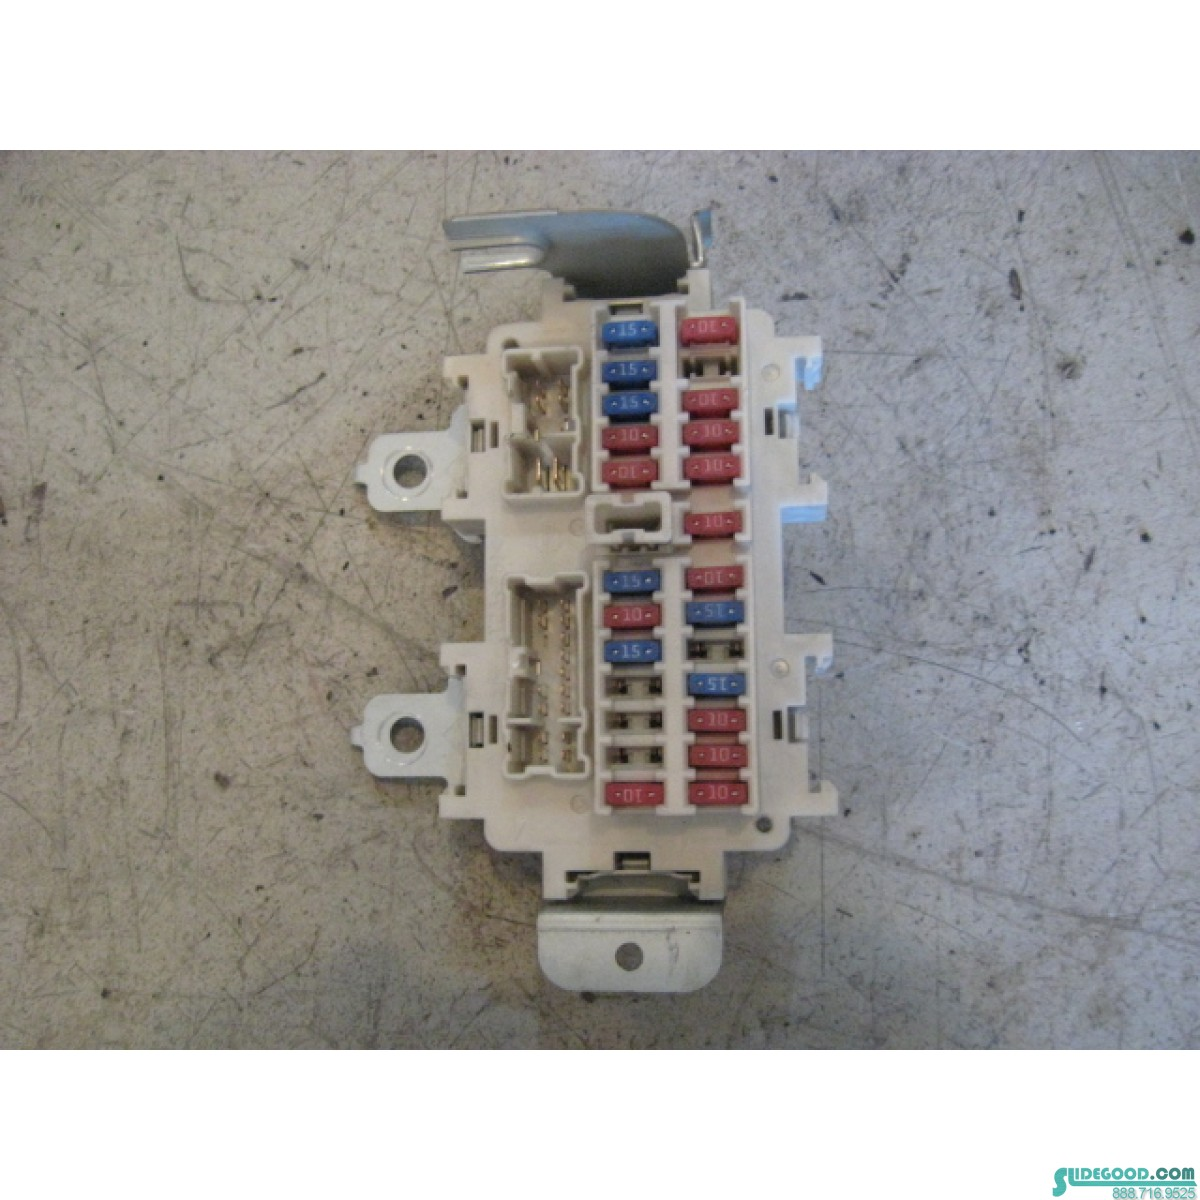 2003 Nissan 350z Fuse Box Diagram Wiring Libraries Quest 03 Todays03 Interior R9736 2001